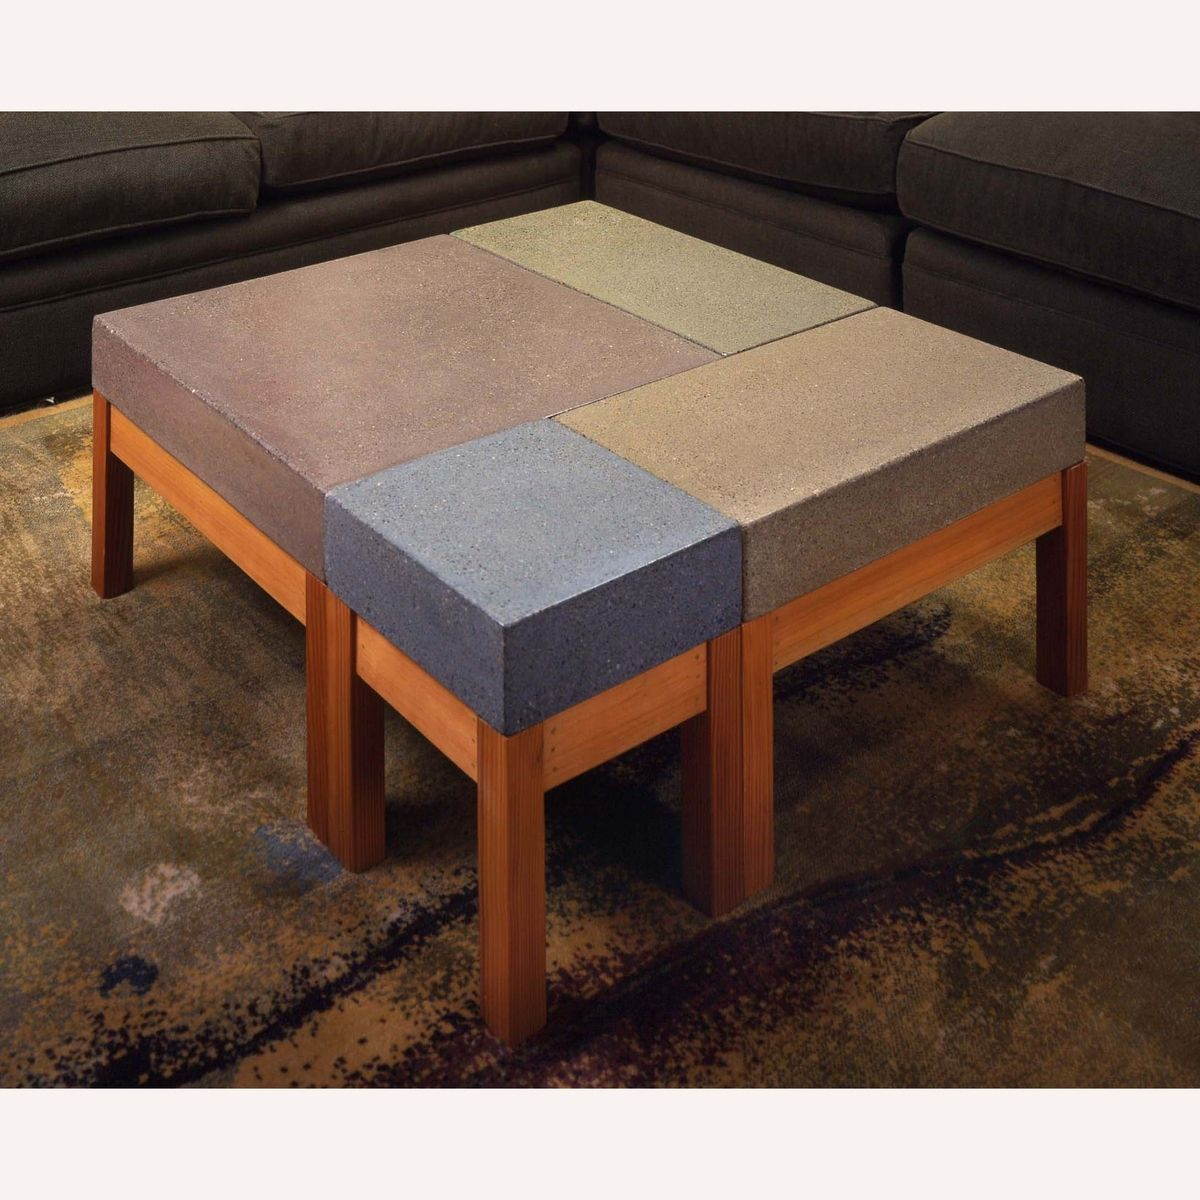 Design Modular Coffee Table hand crafted concrete modular coffee table by bohemian stoneworks custom made table